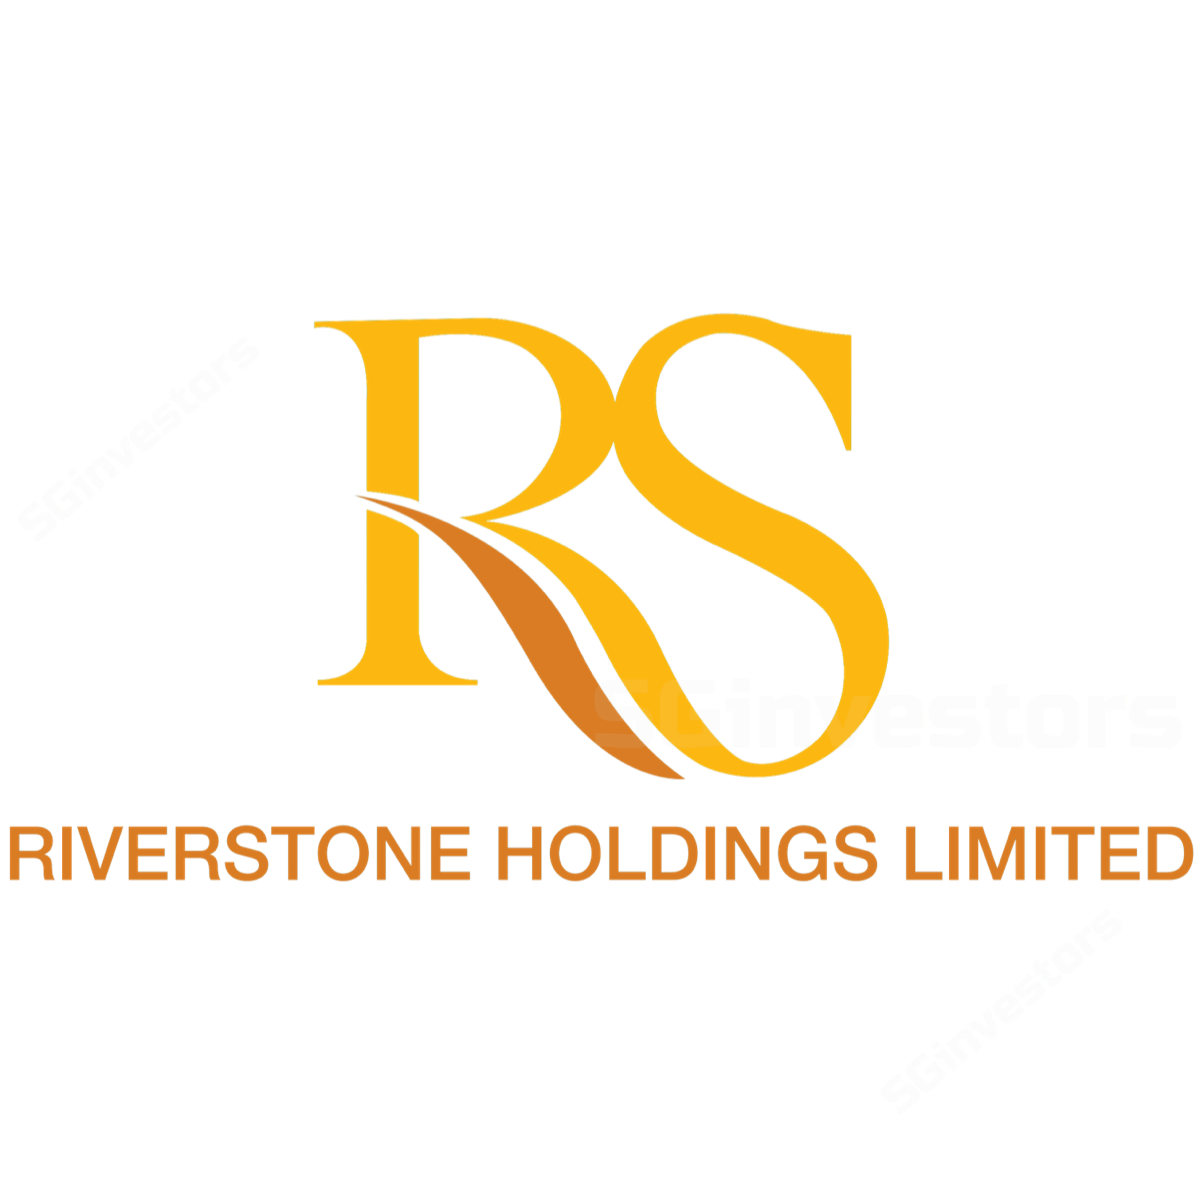 Riverstone Holdings - Maybank Kim Eng 2018-05-11: A Soft Start; Outlook Remains Positive